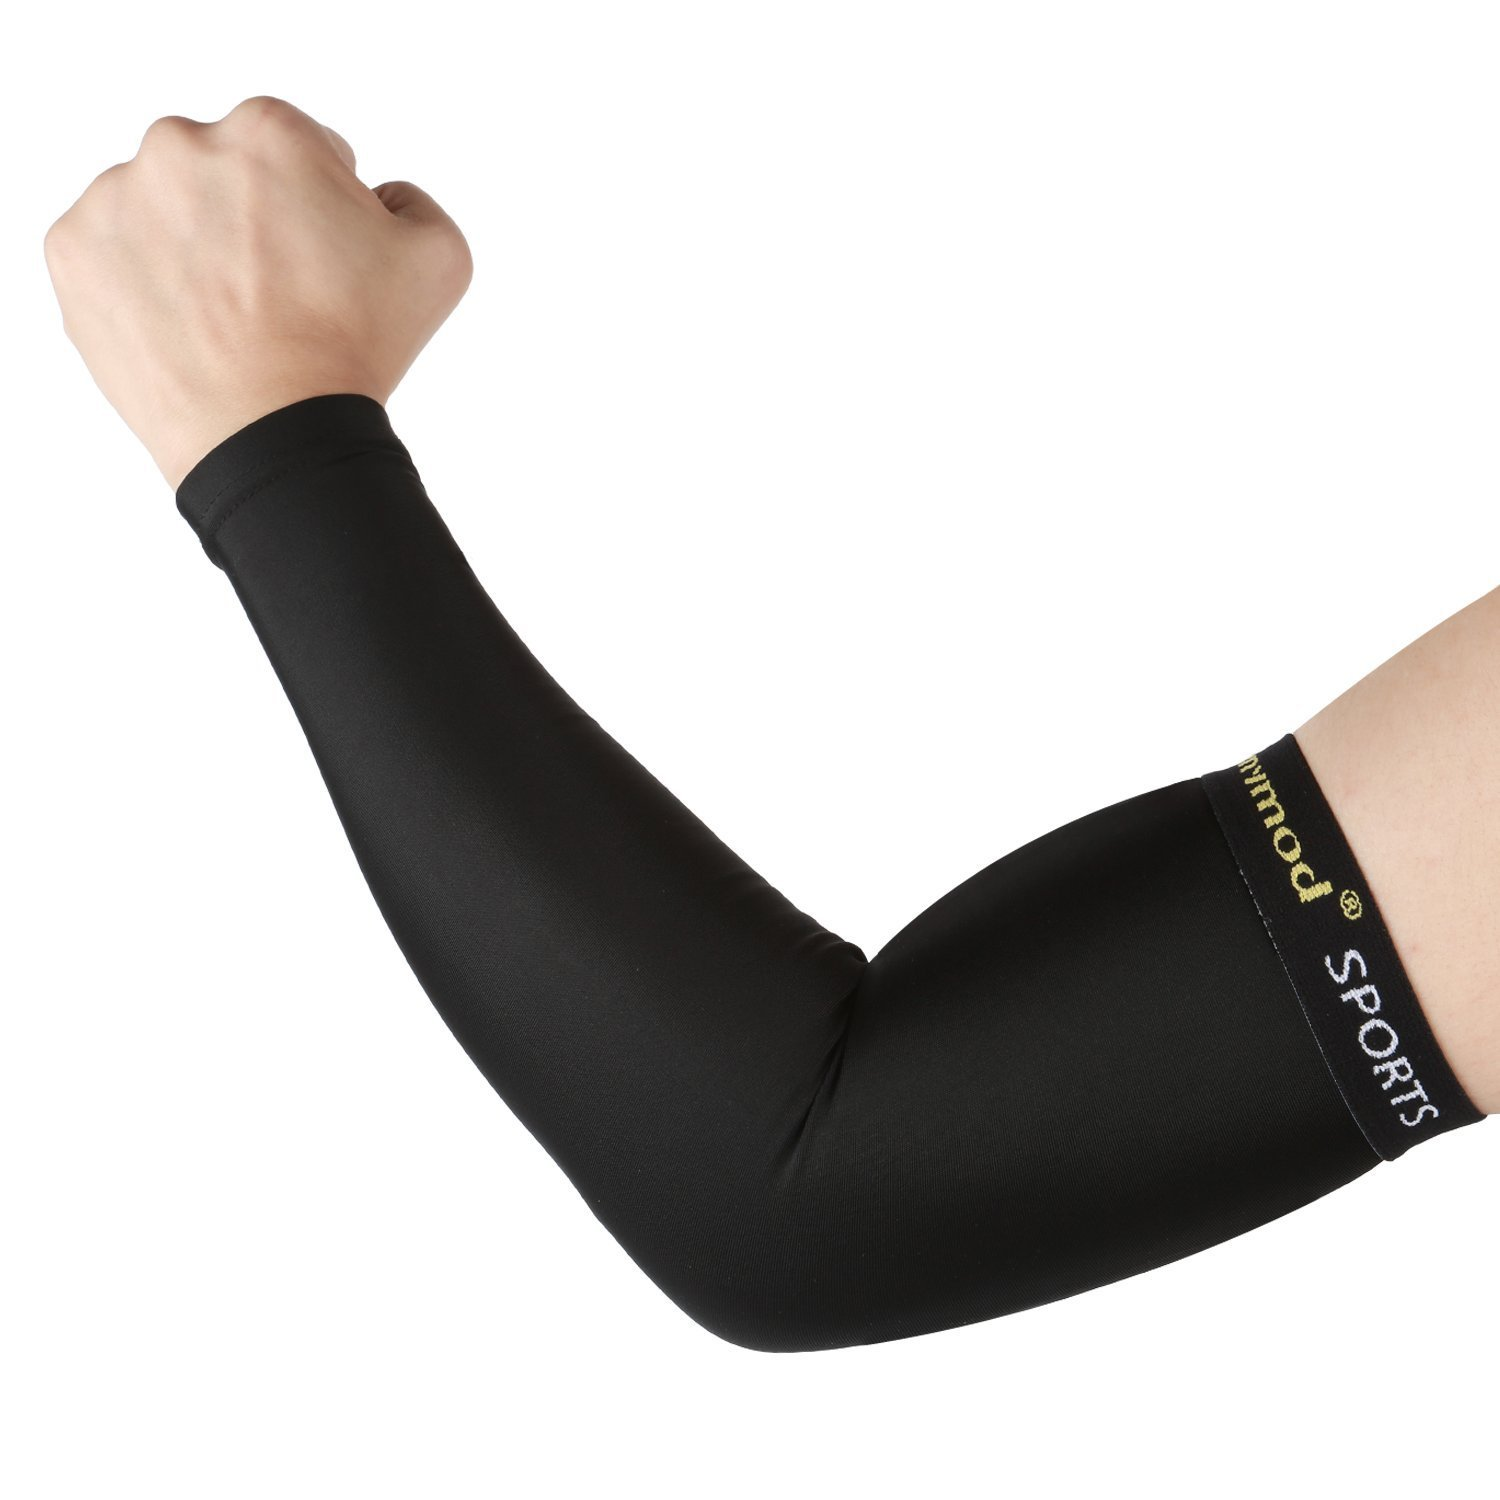 Shinymod sun protection sleeves - Hikes often take hours in very sunny and hot climates. Simply using creams with filters might be not enough. Those sleeves (or gloves) not only protect from the UV but also from the heat itself.